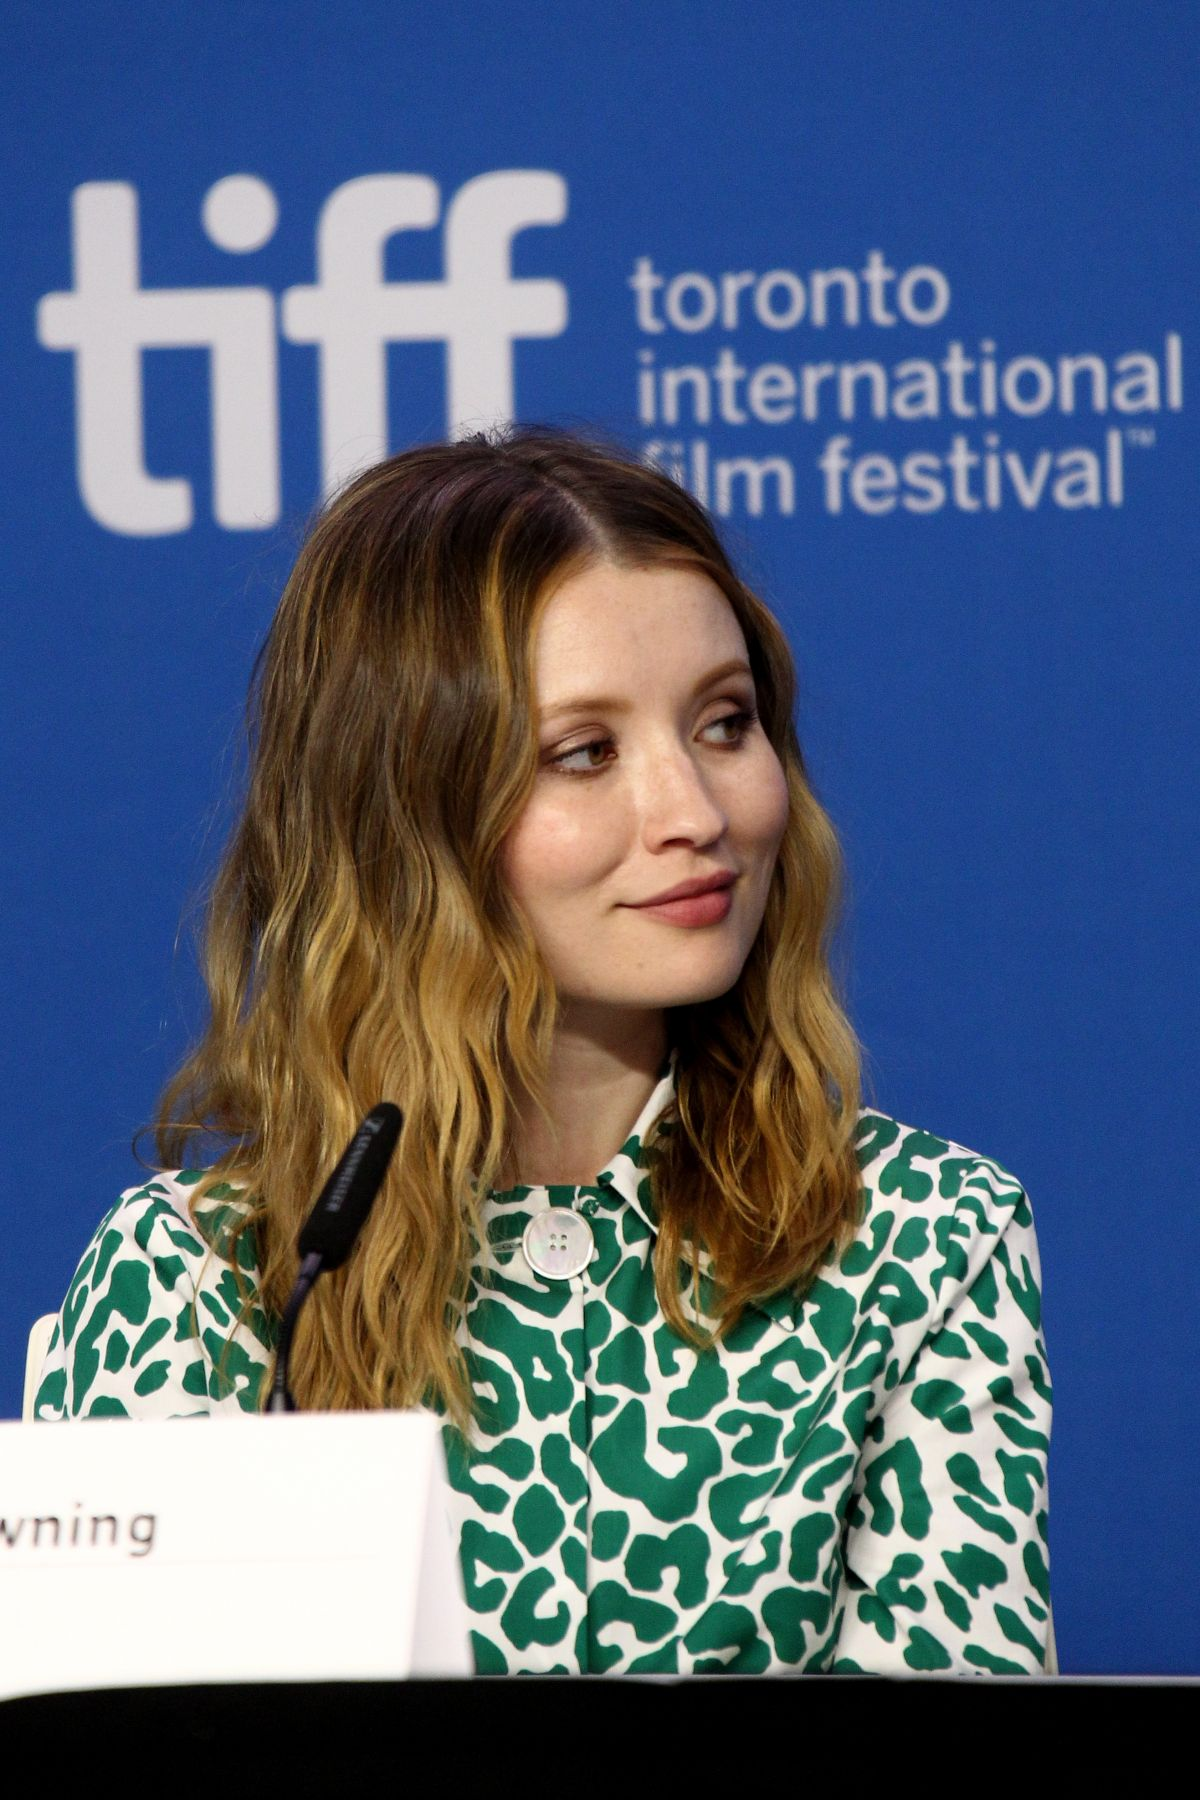 EMILY BROWNING at Legend Press Conference at 2015 TIFF 09/12/2015